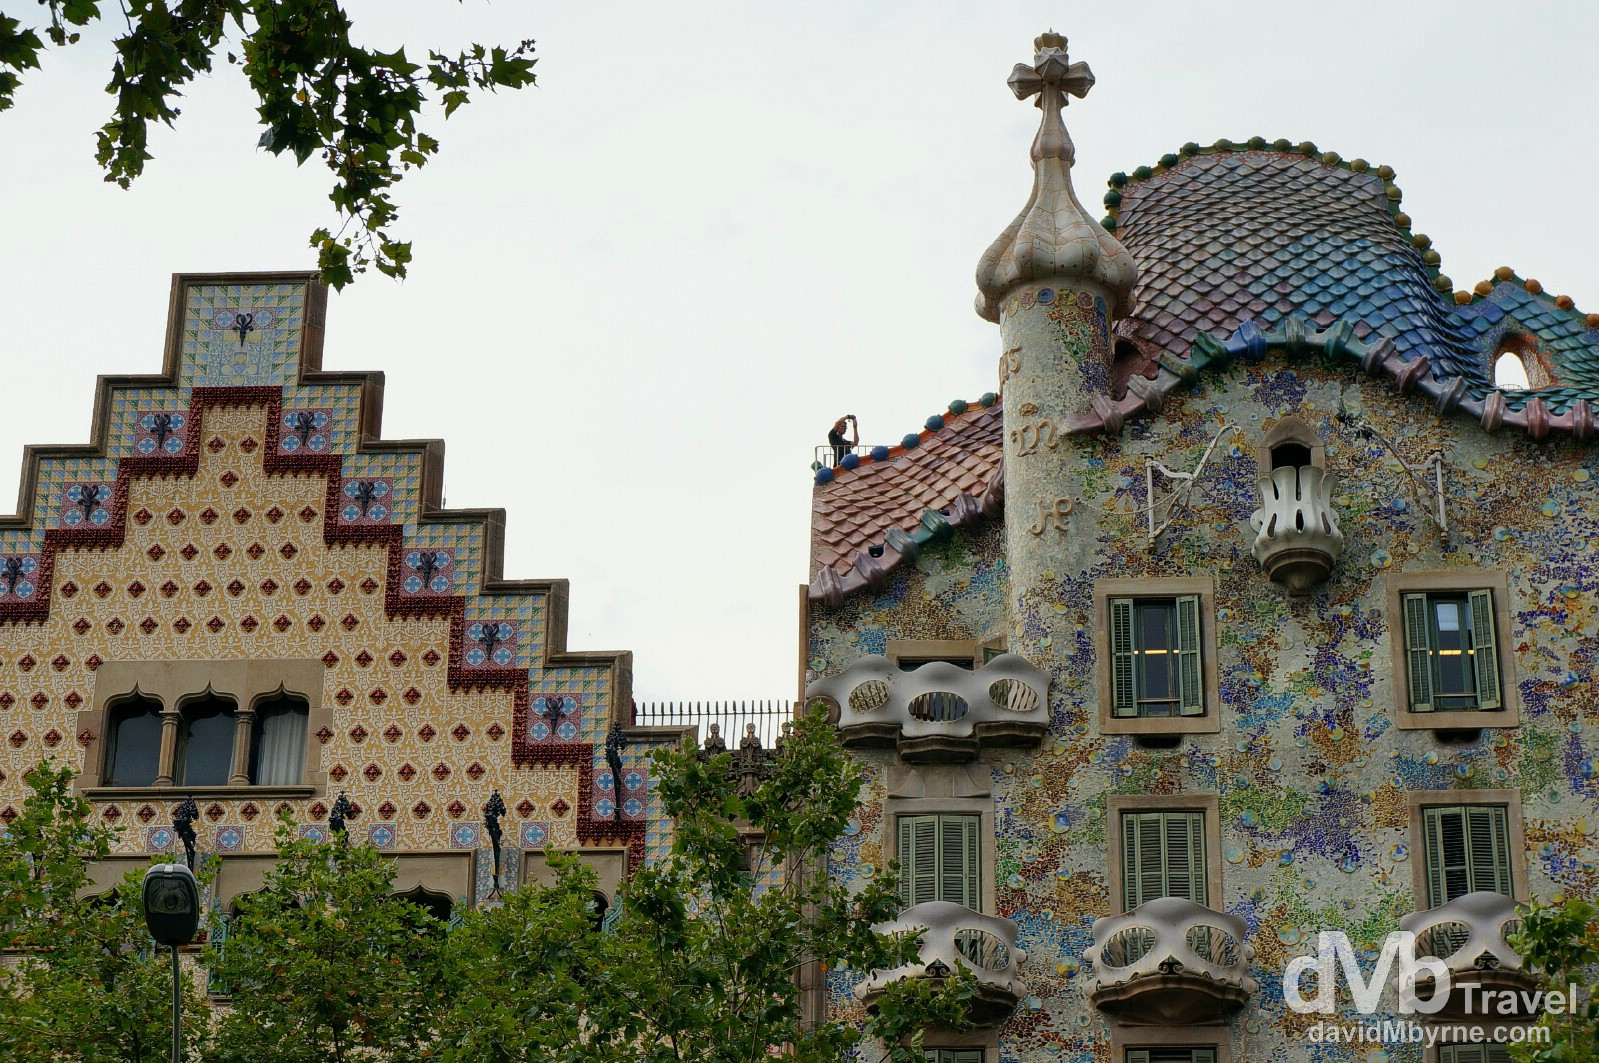 Gaudi's Casa Batilo (right) & Casa Amatller on Passeig de Gracia, Barcelona, Spain. June 17th, 2014.